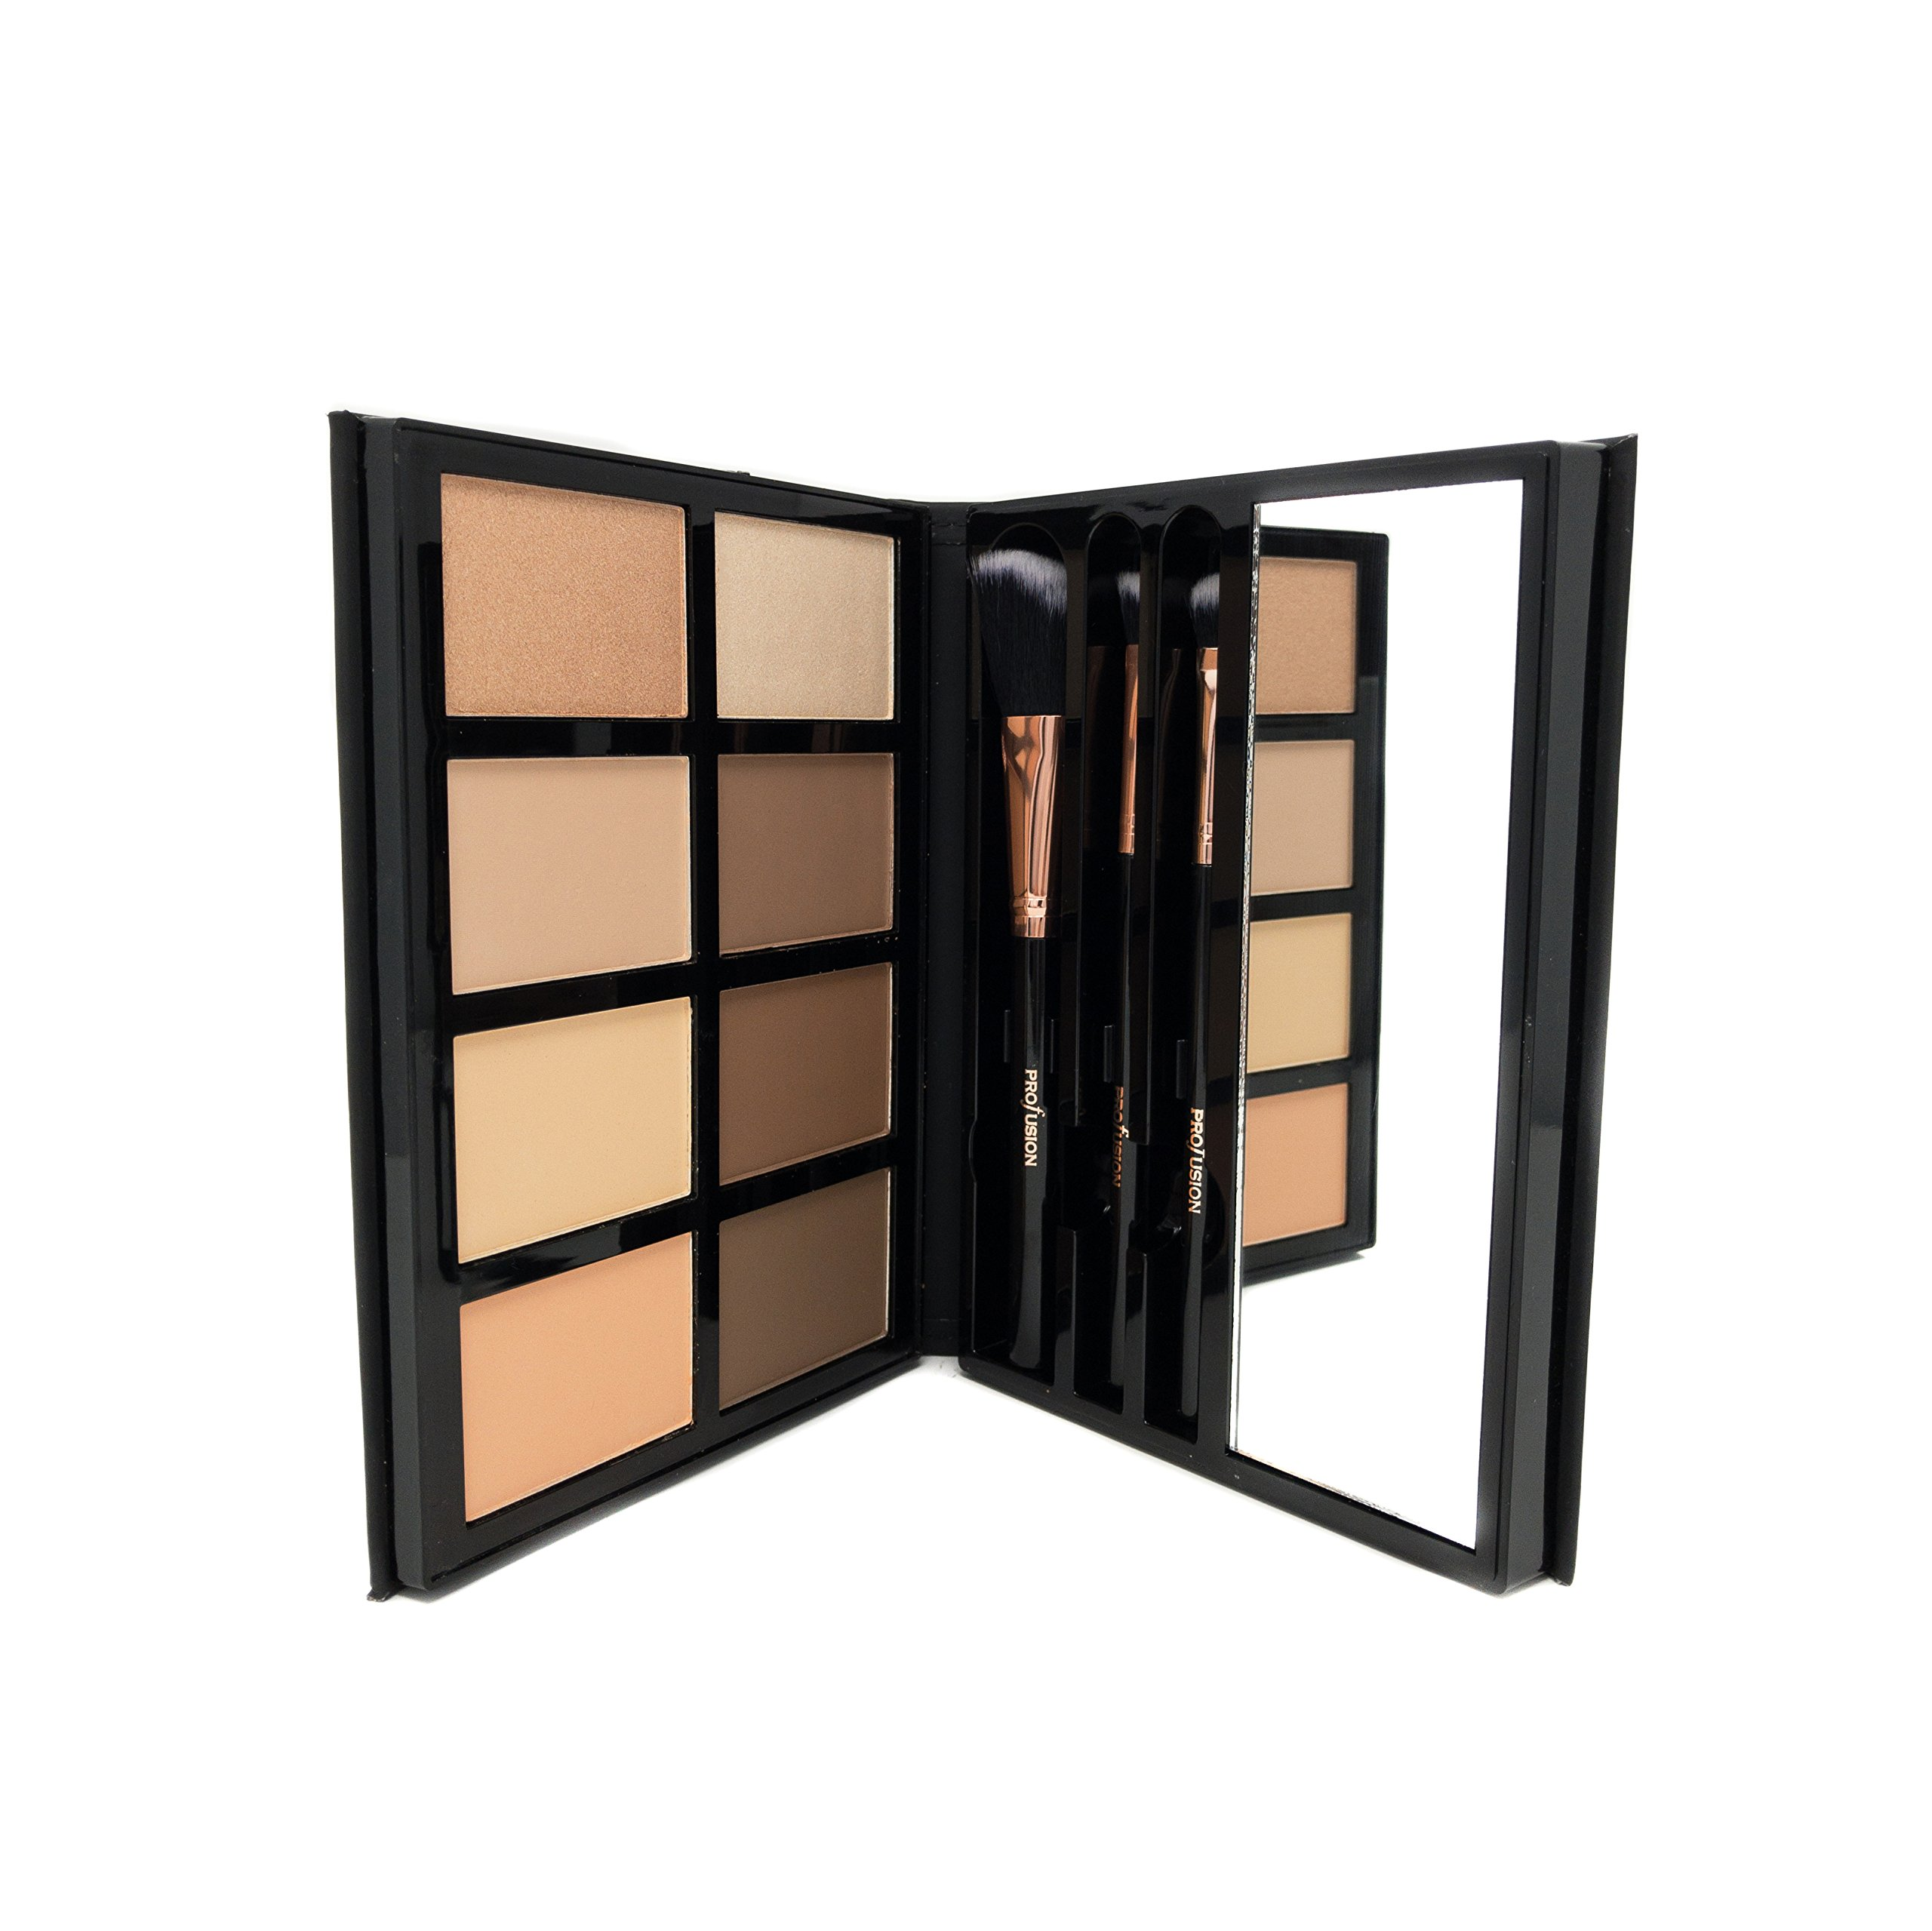 Profusion Cosmetics - Contour - Professional 8 Color Palette - Face Powder Highlighter Bronzer Makeup Kit Brushes Included - Champagne Highlight Nutmeg Ivory Peach Pale Gala Moonstone Java Ebony by Profusion Cosmetics (Image #4)